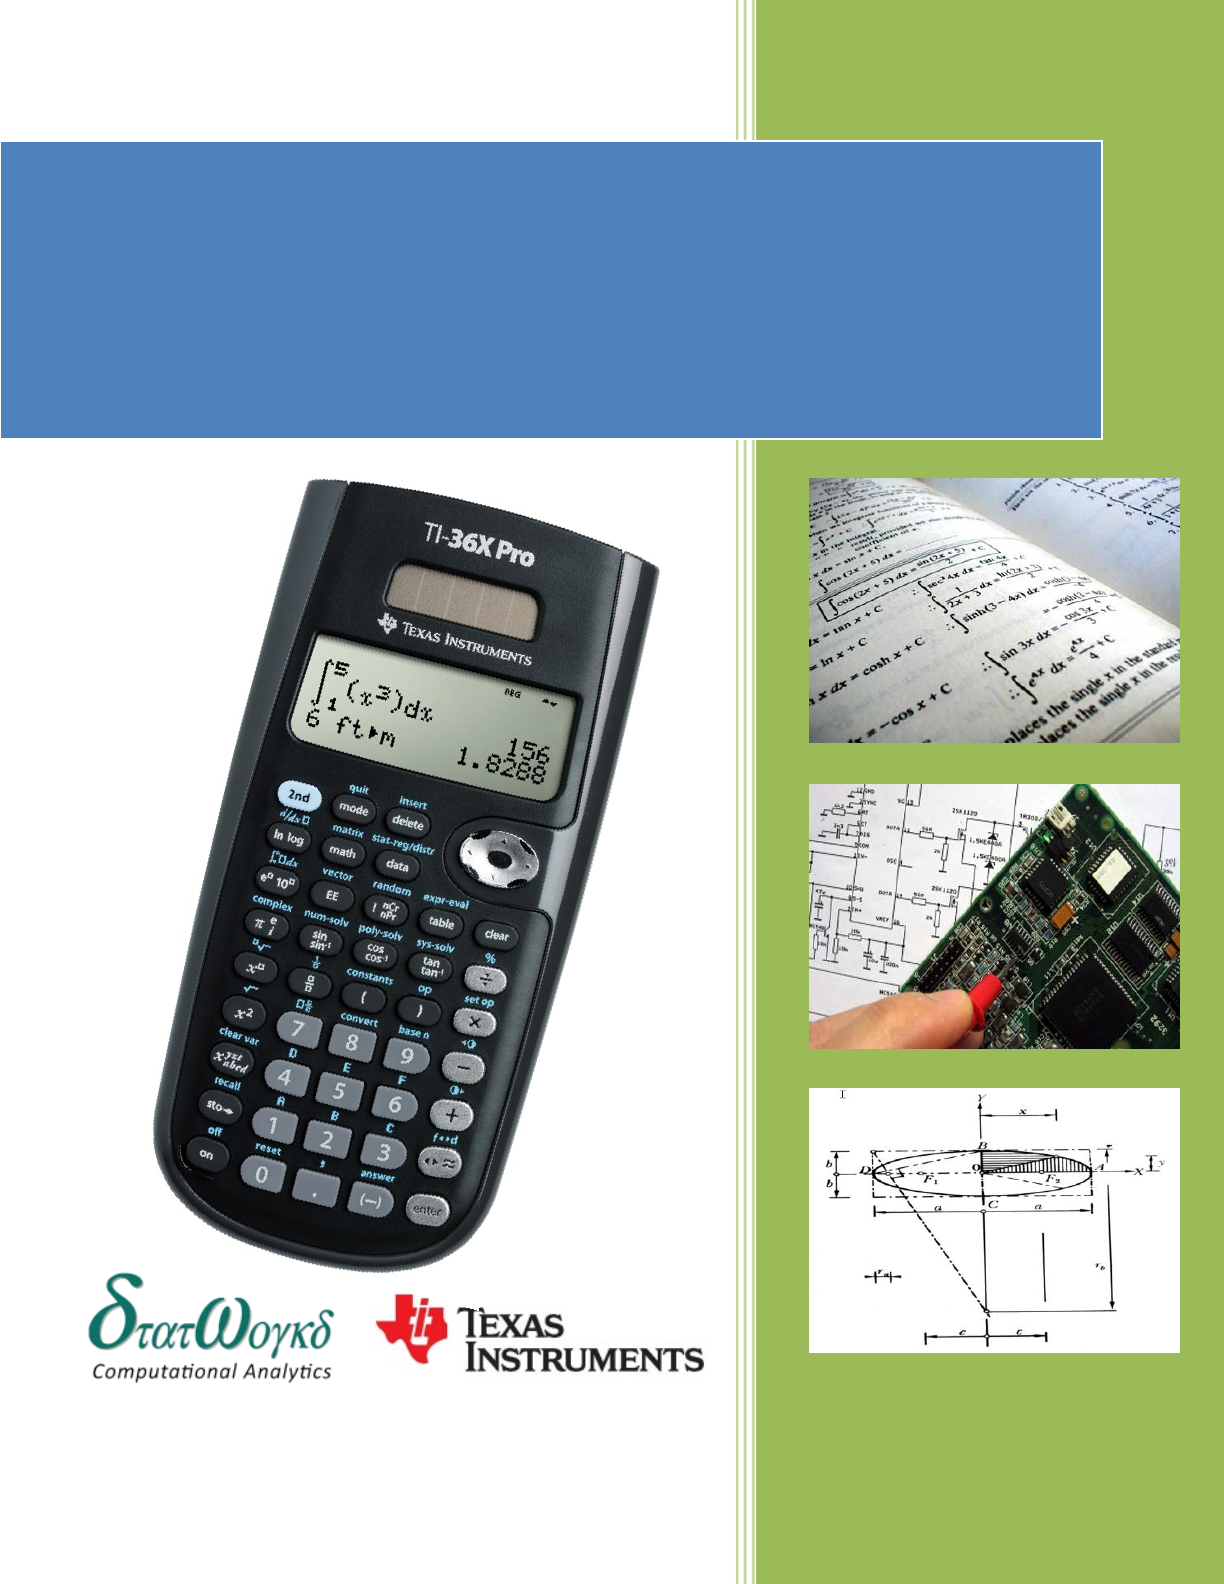 JBL Engineering Mathematics Made Easy With TI 36X Pro (All India